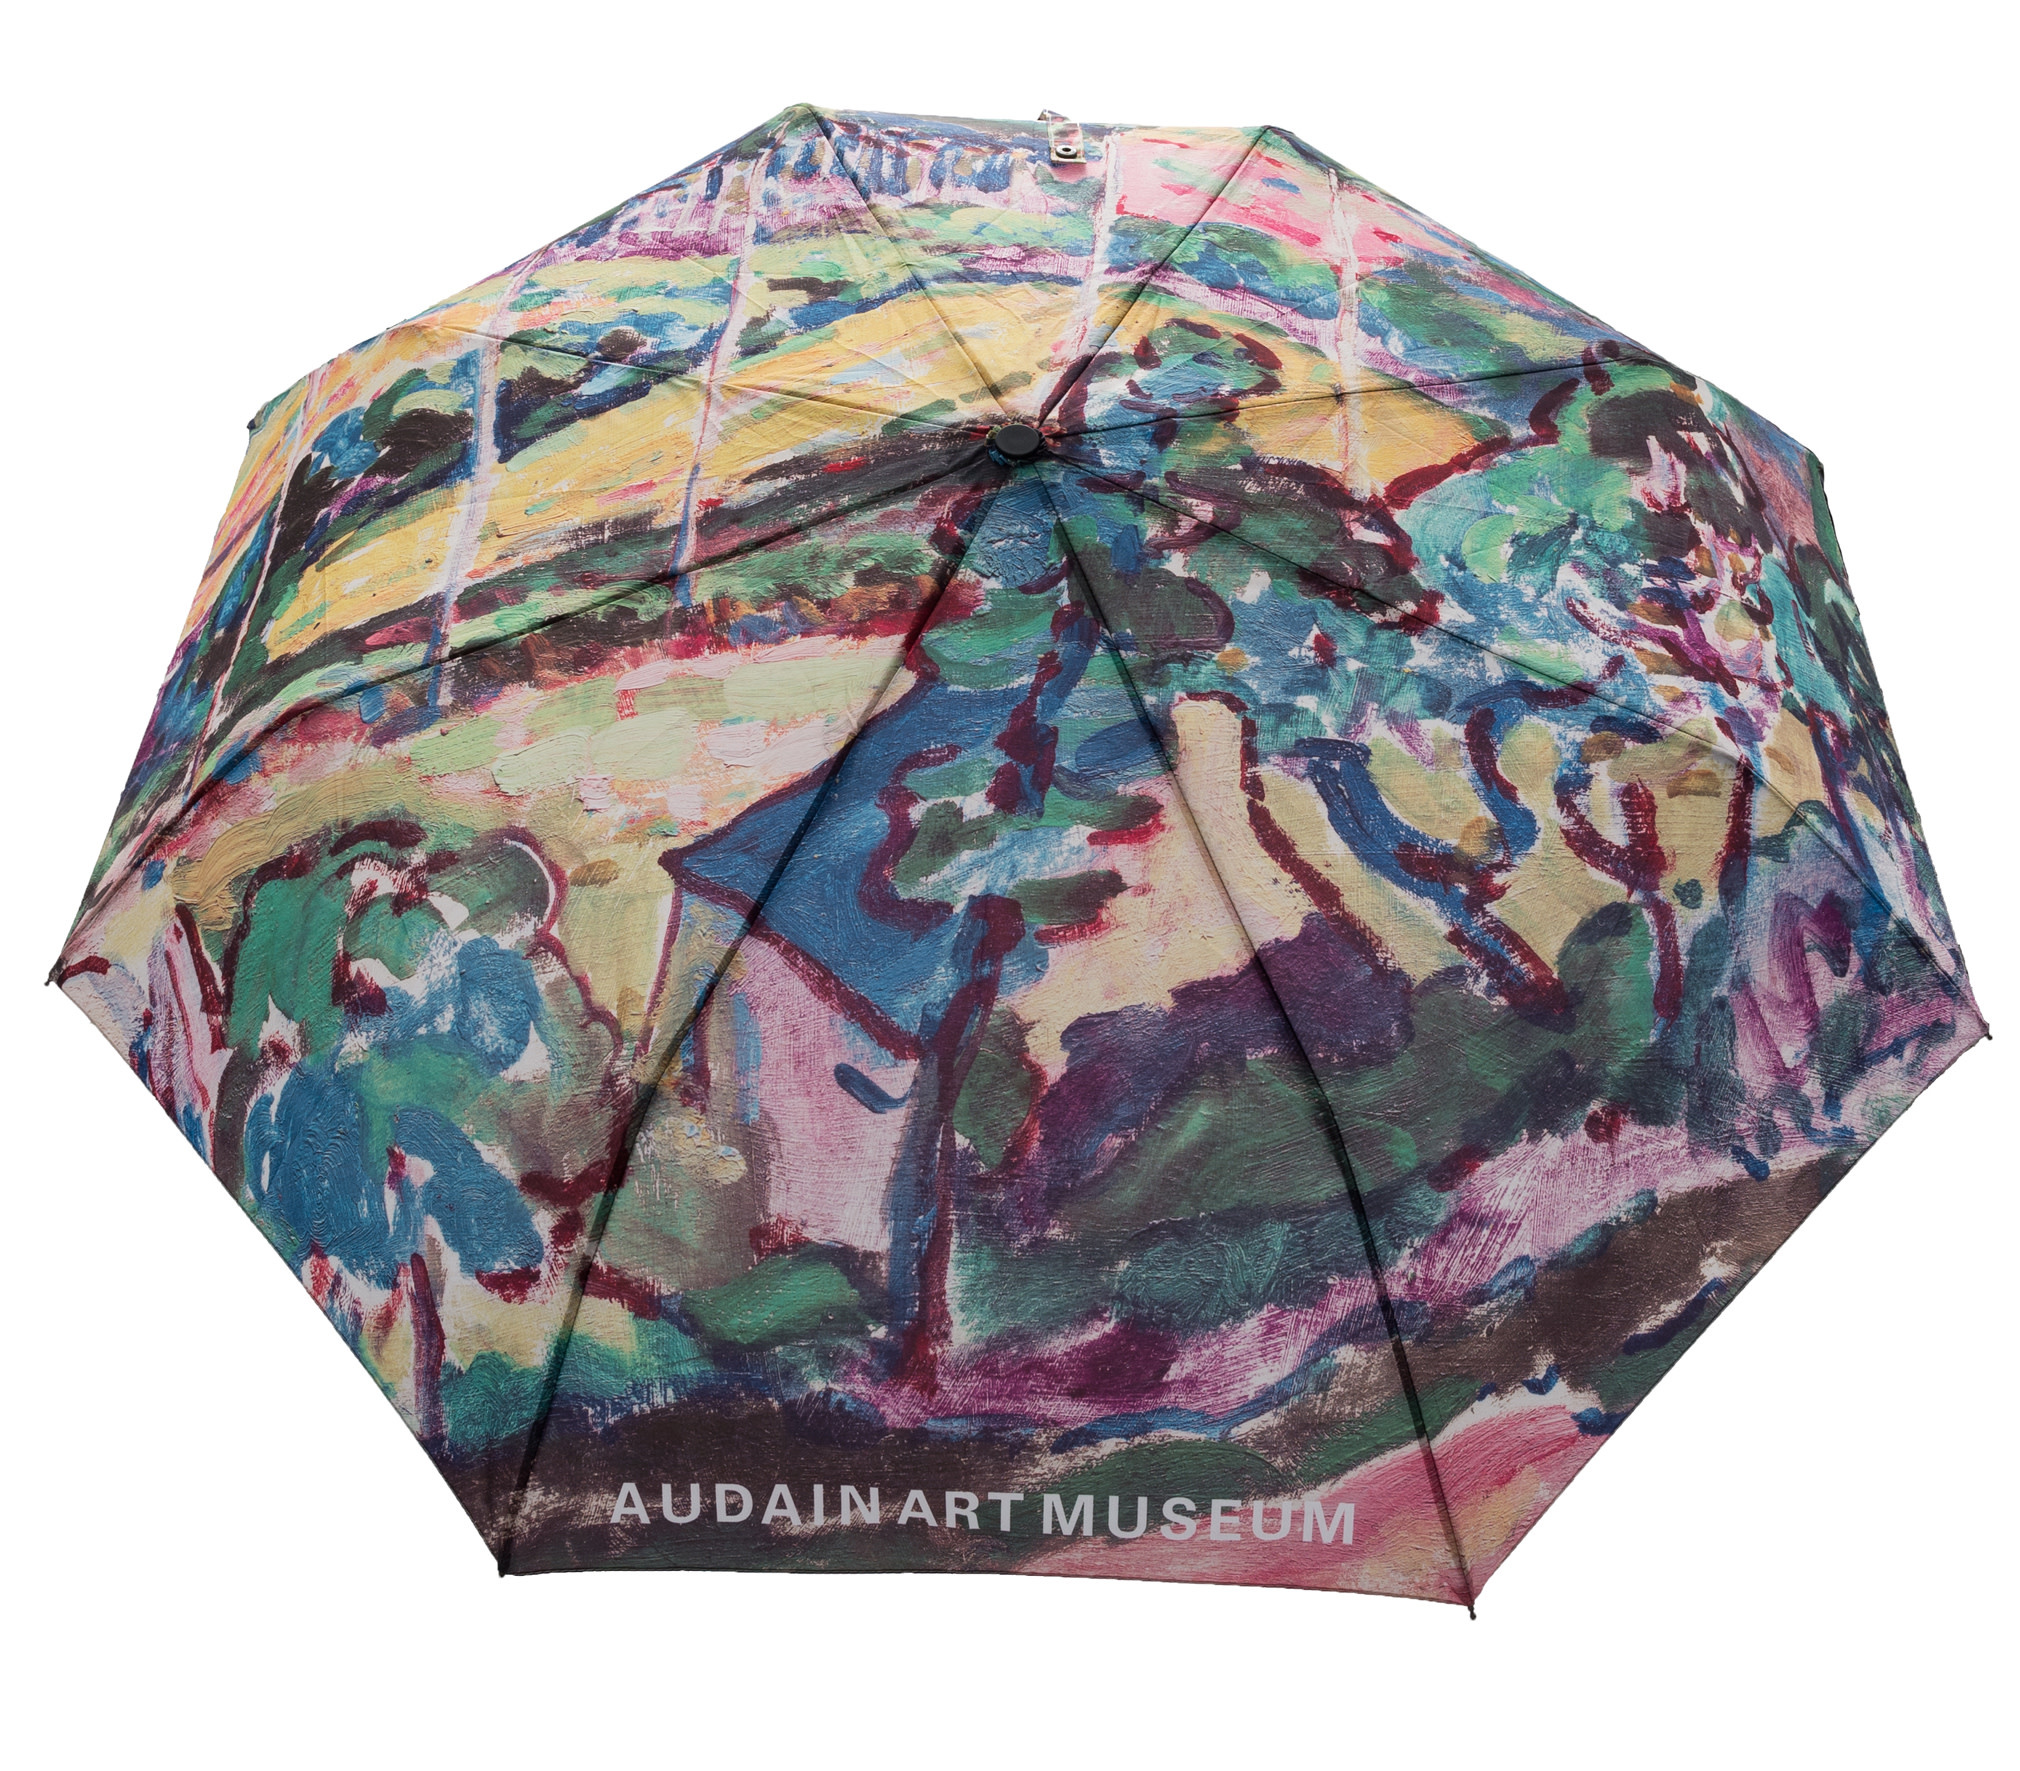 AAM Collection Umbrella - Le Paysage - Emily Carr